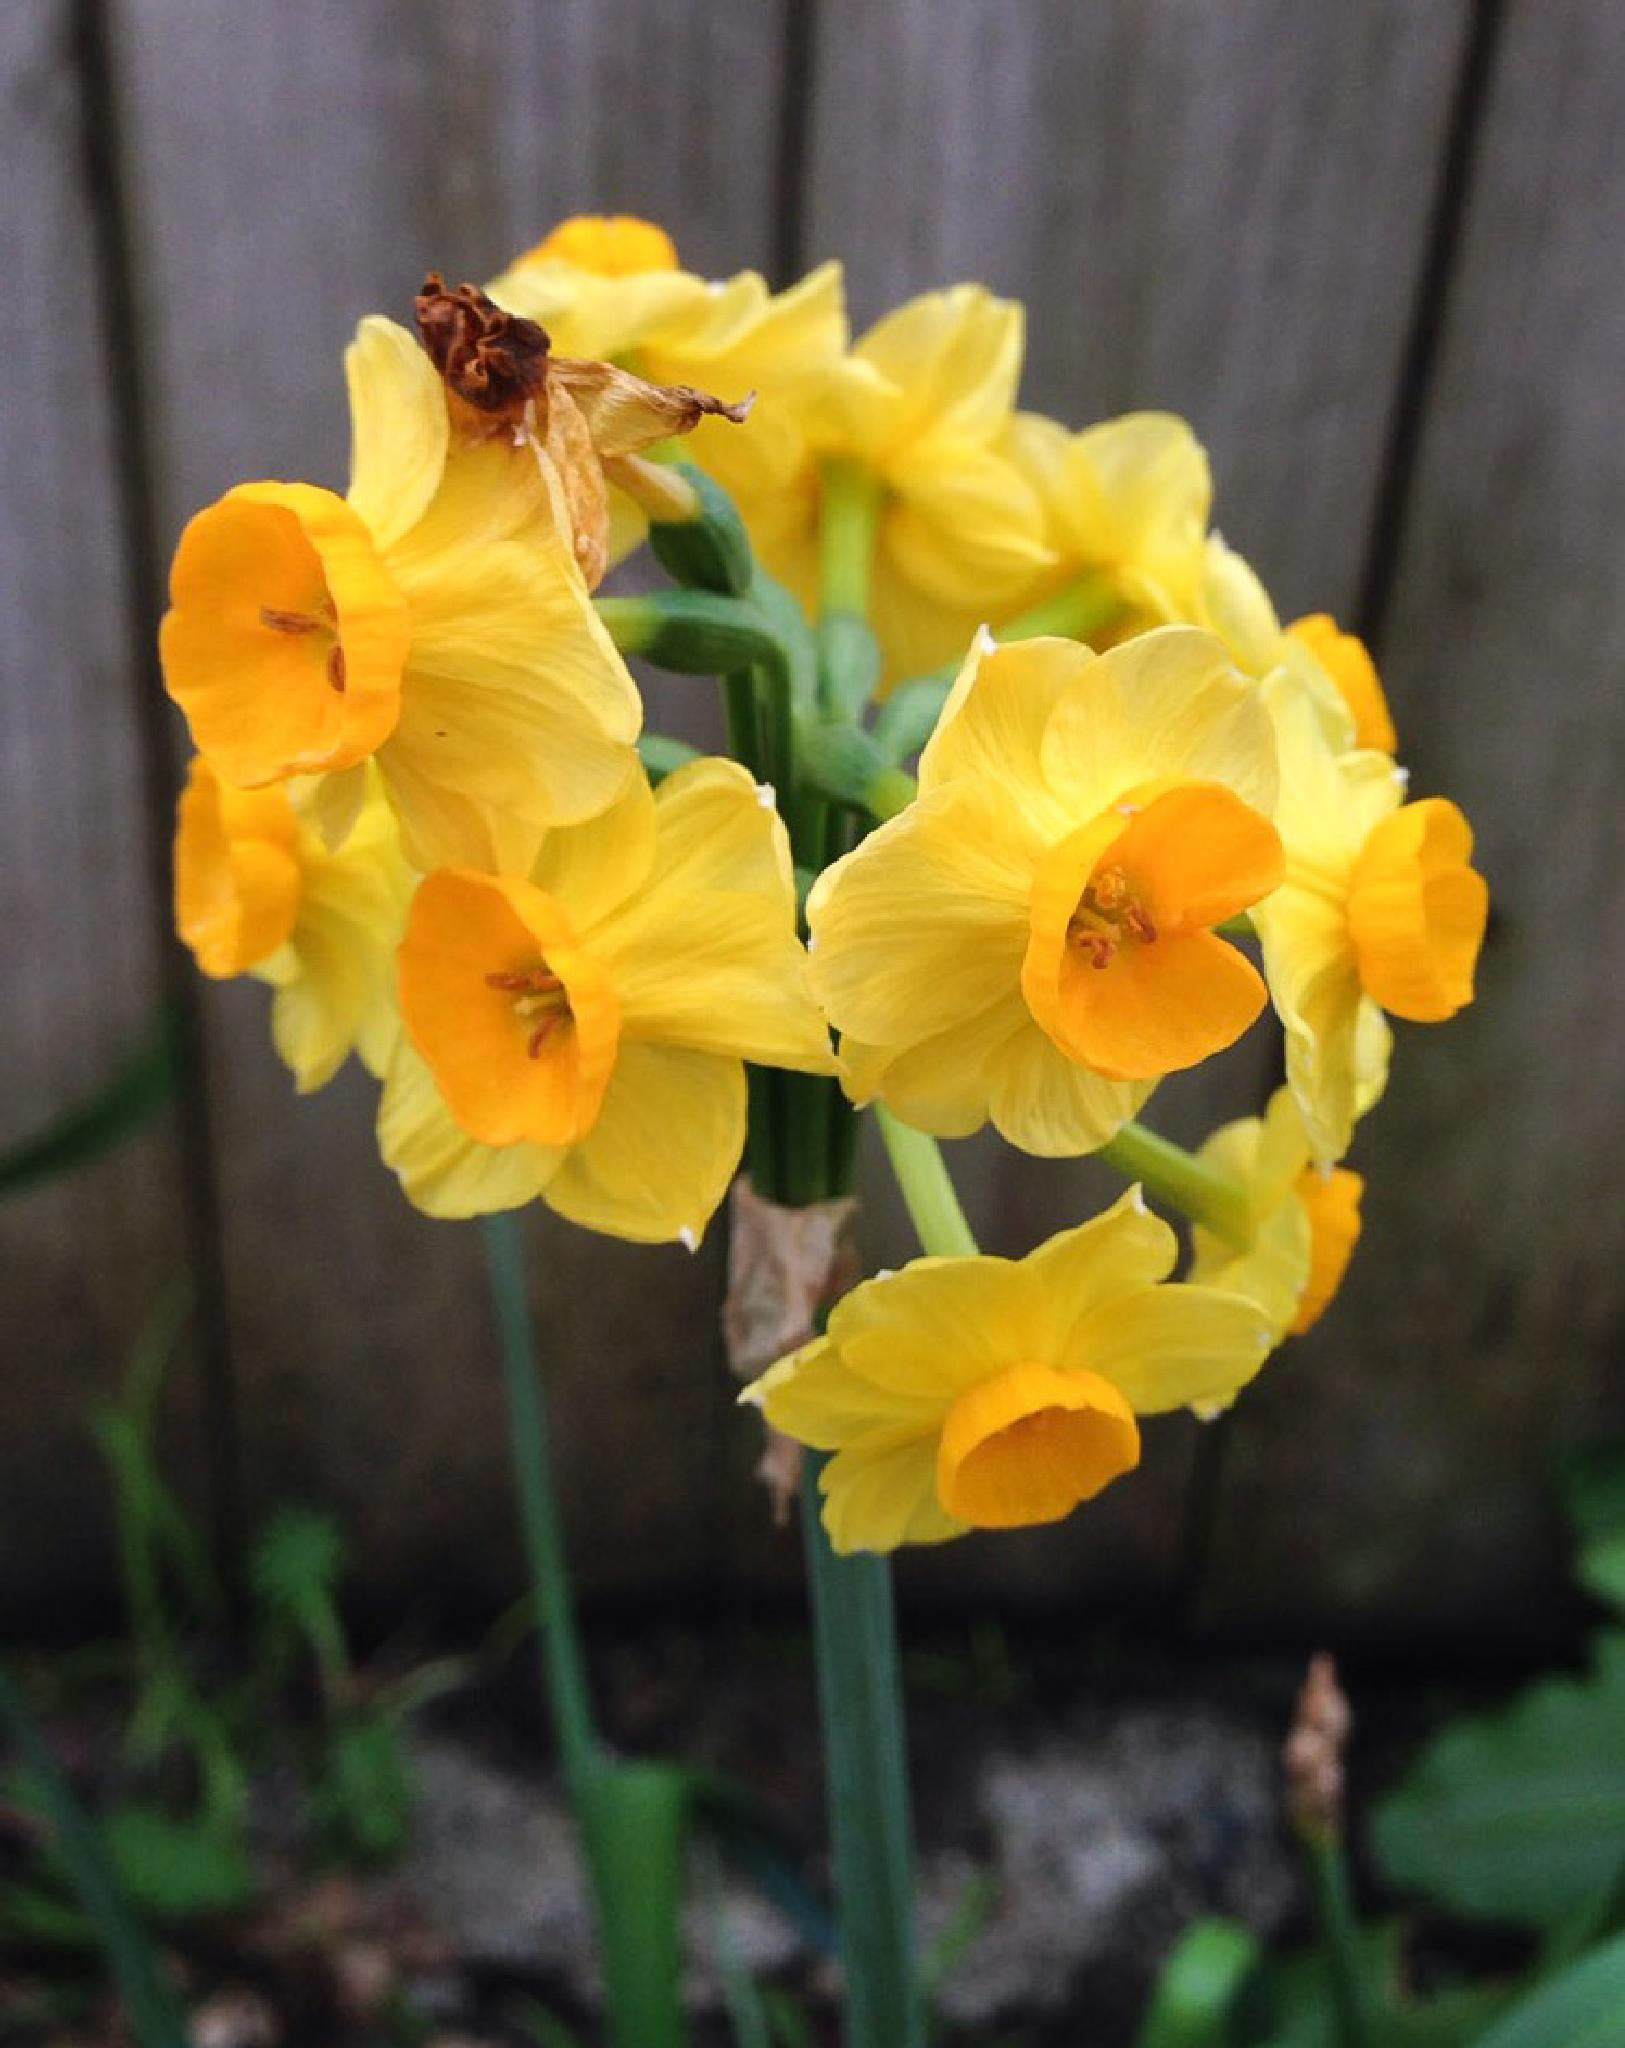 Golden Daffodil by Tee Gee